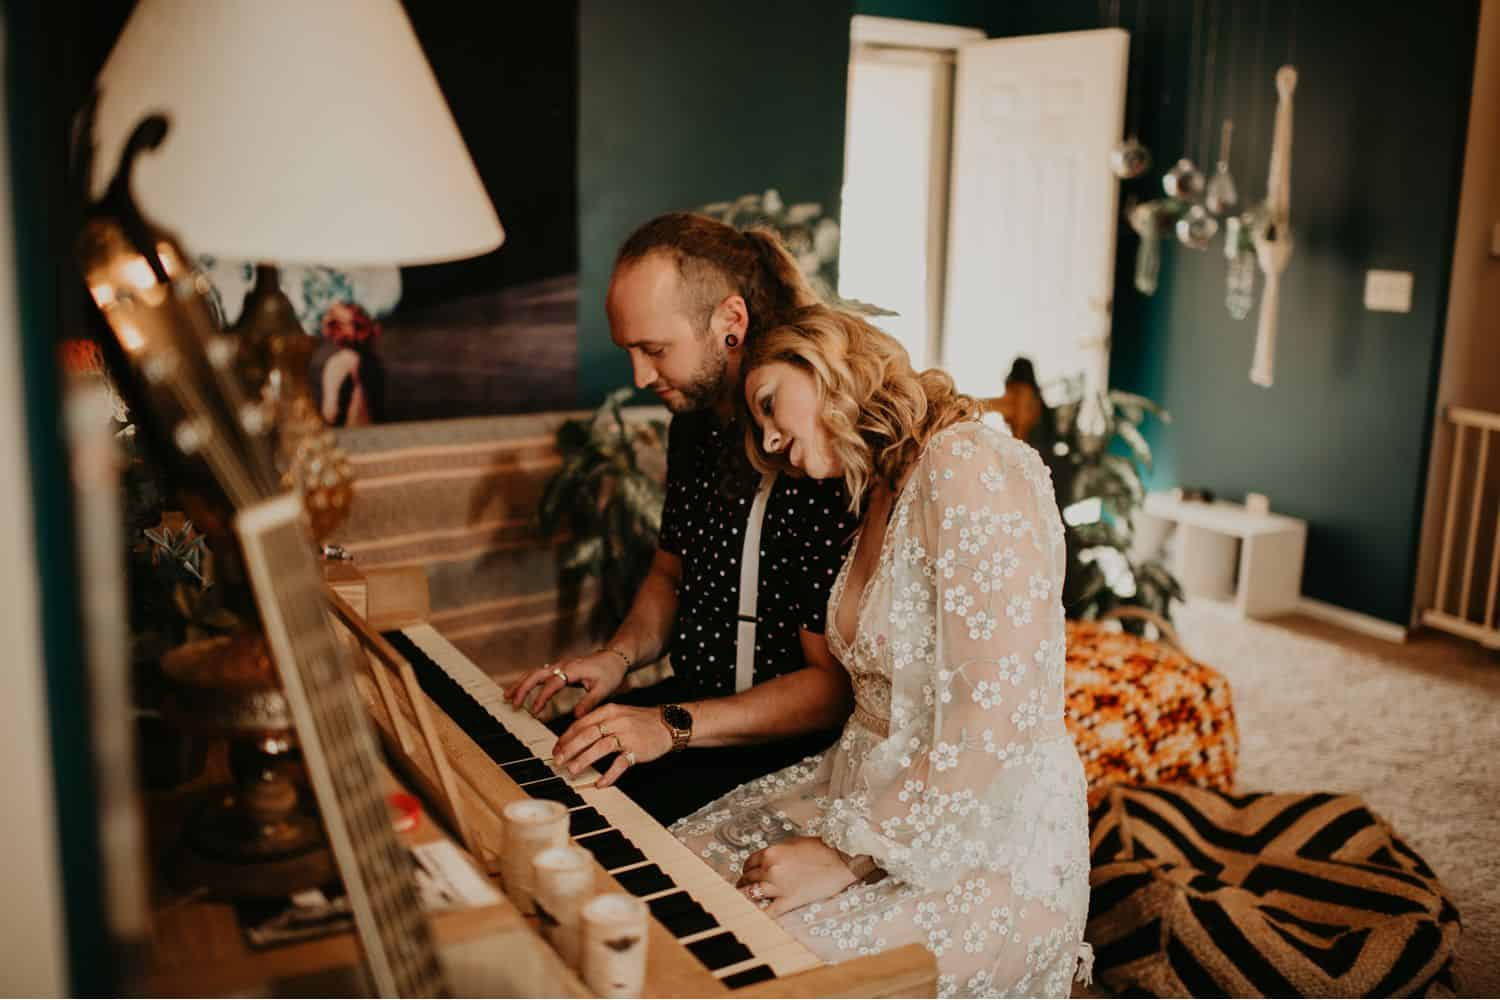 A couple sits at a piano in their eclectically decorated home. The woman's head rests on the man's shoulder as he plays. Learn how to take low light photos like this one by Shelby Laine Photography.